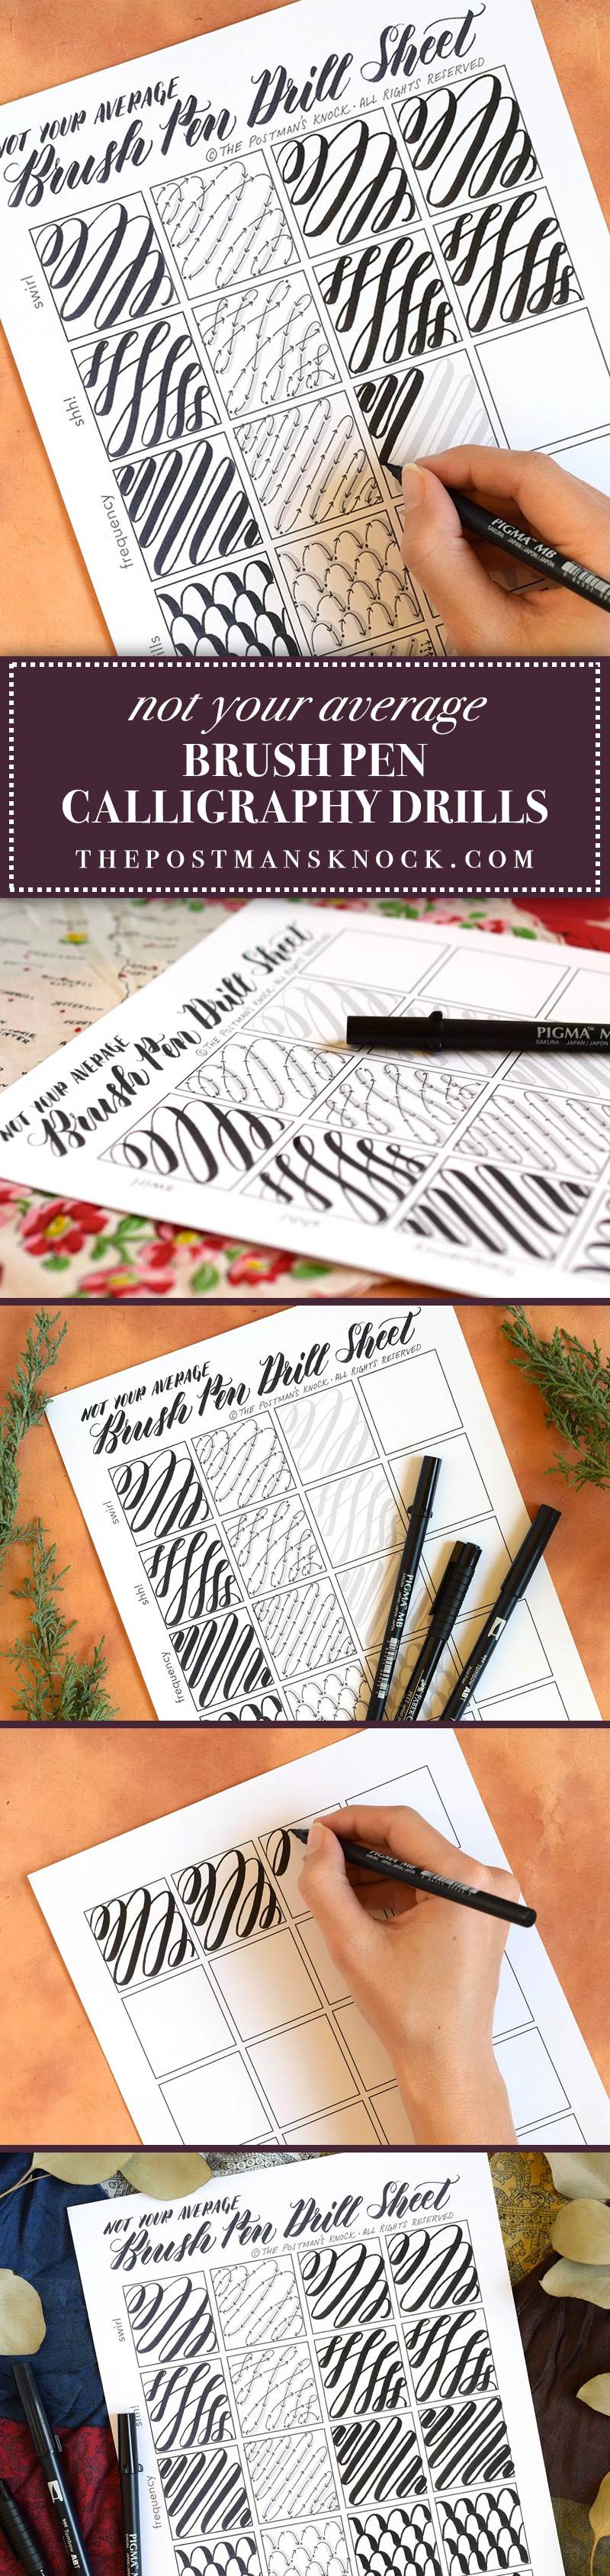 Not Your Average Brush Pen Calligraphy Drills | The Postman's Knock